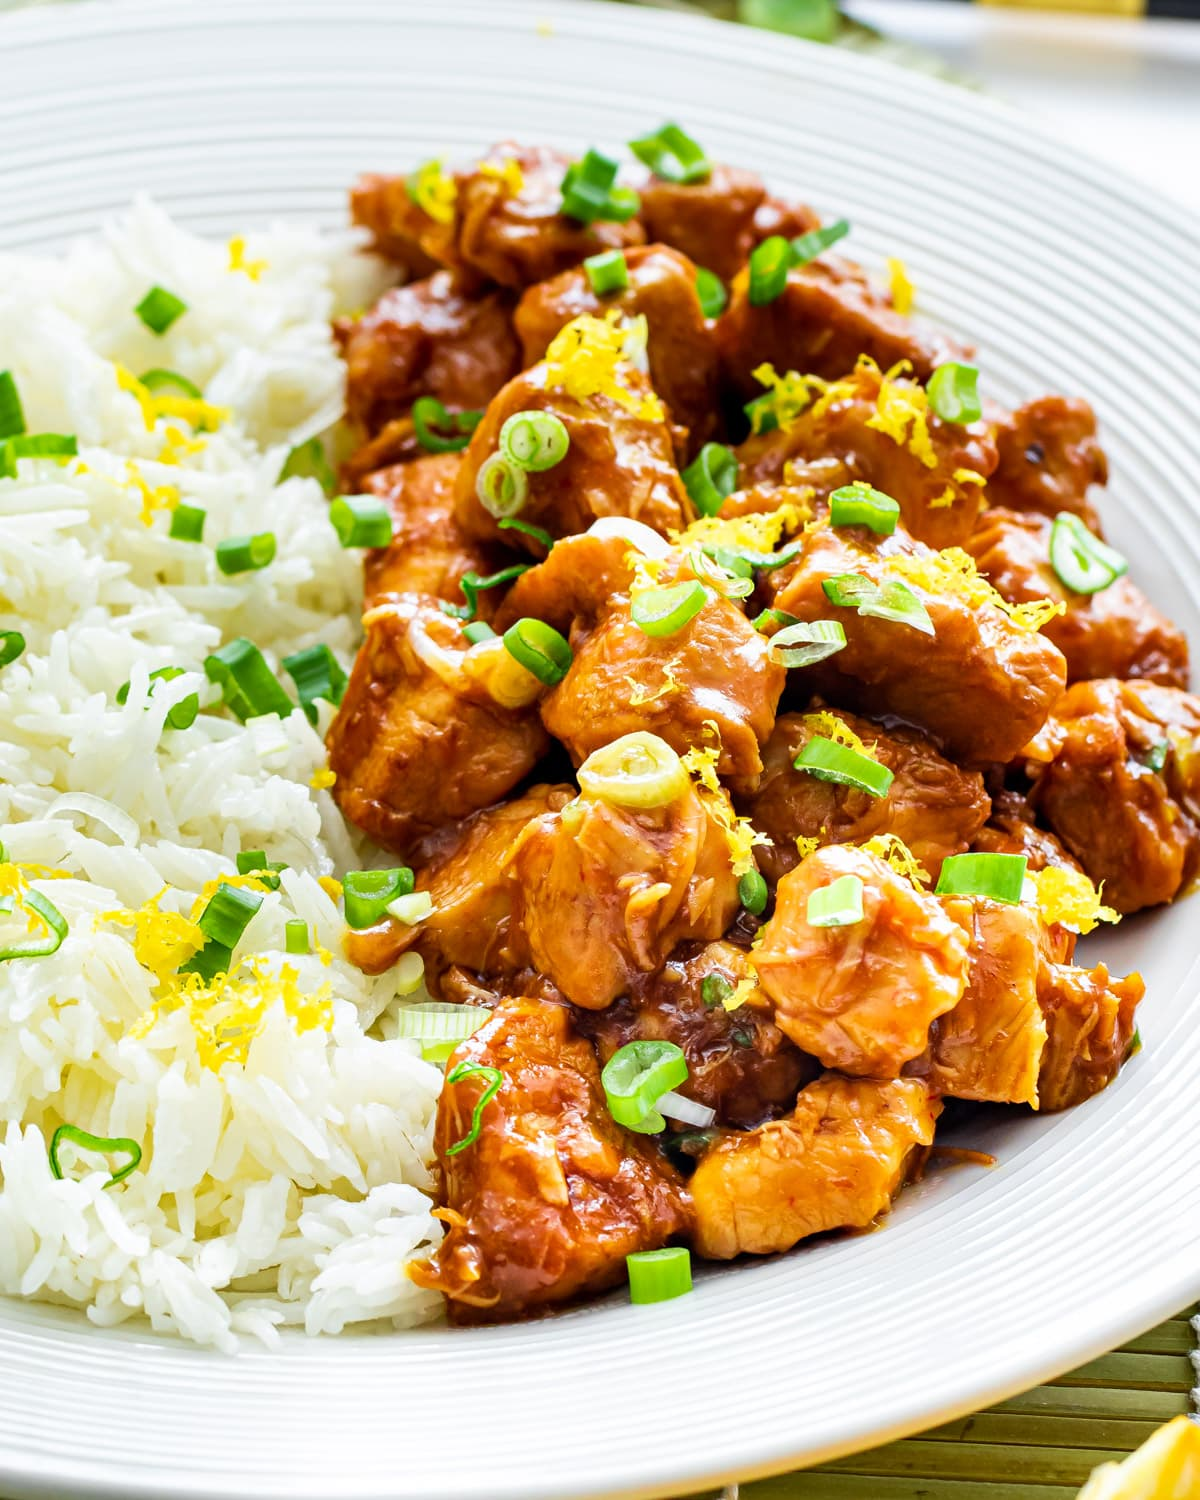 orange chicken on a white plate next to a bed of rice garnished with green onions and lemon zest